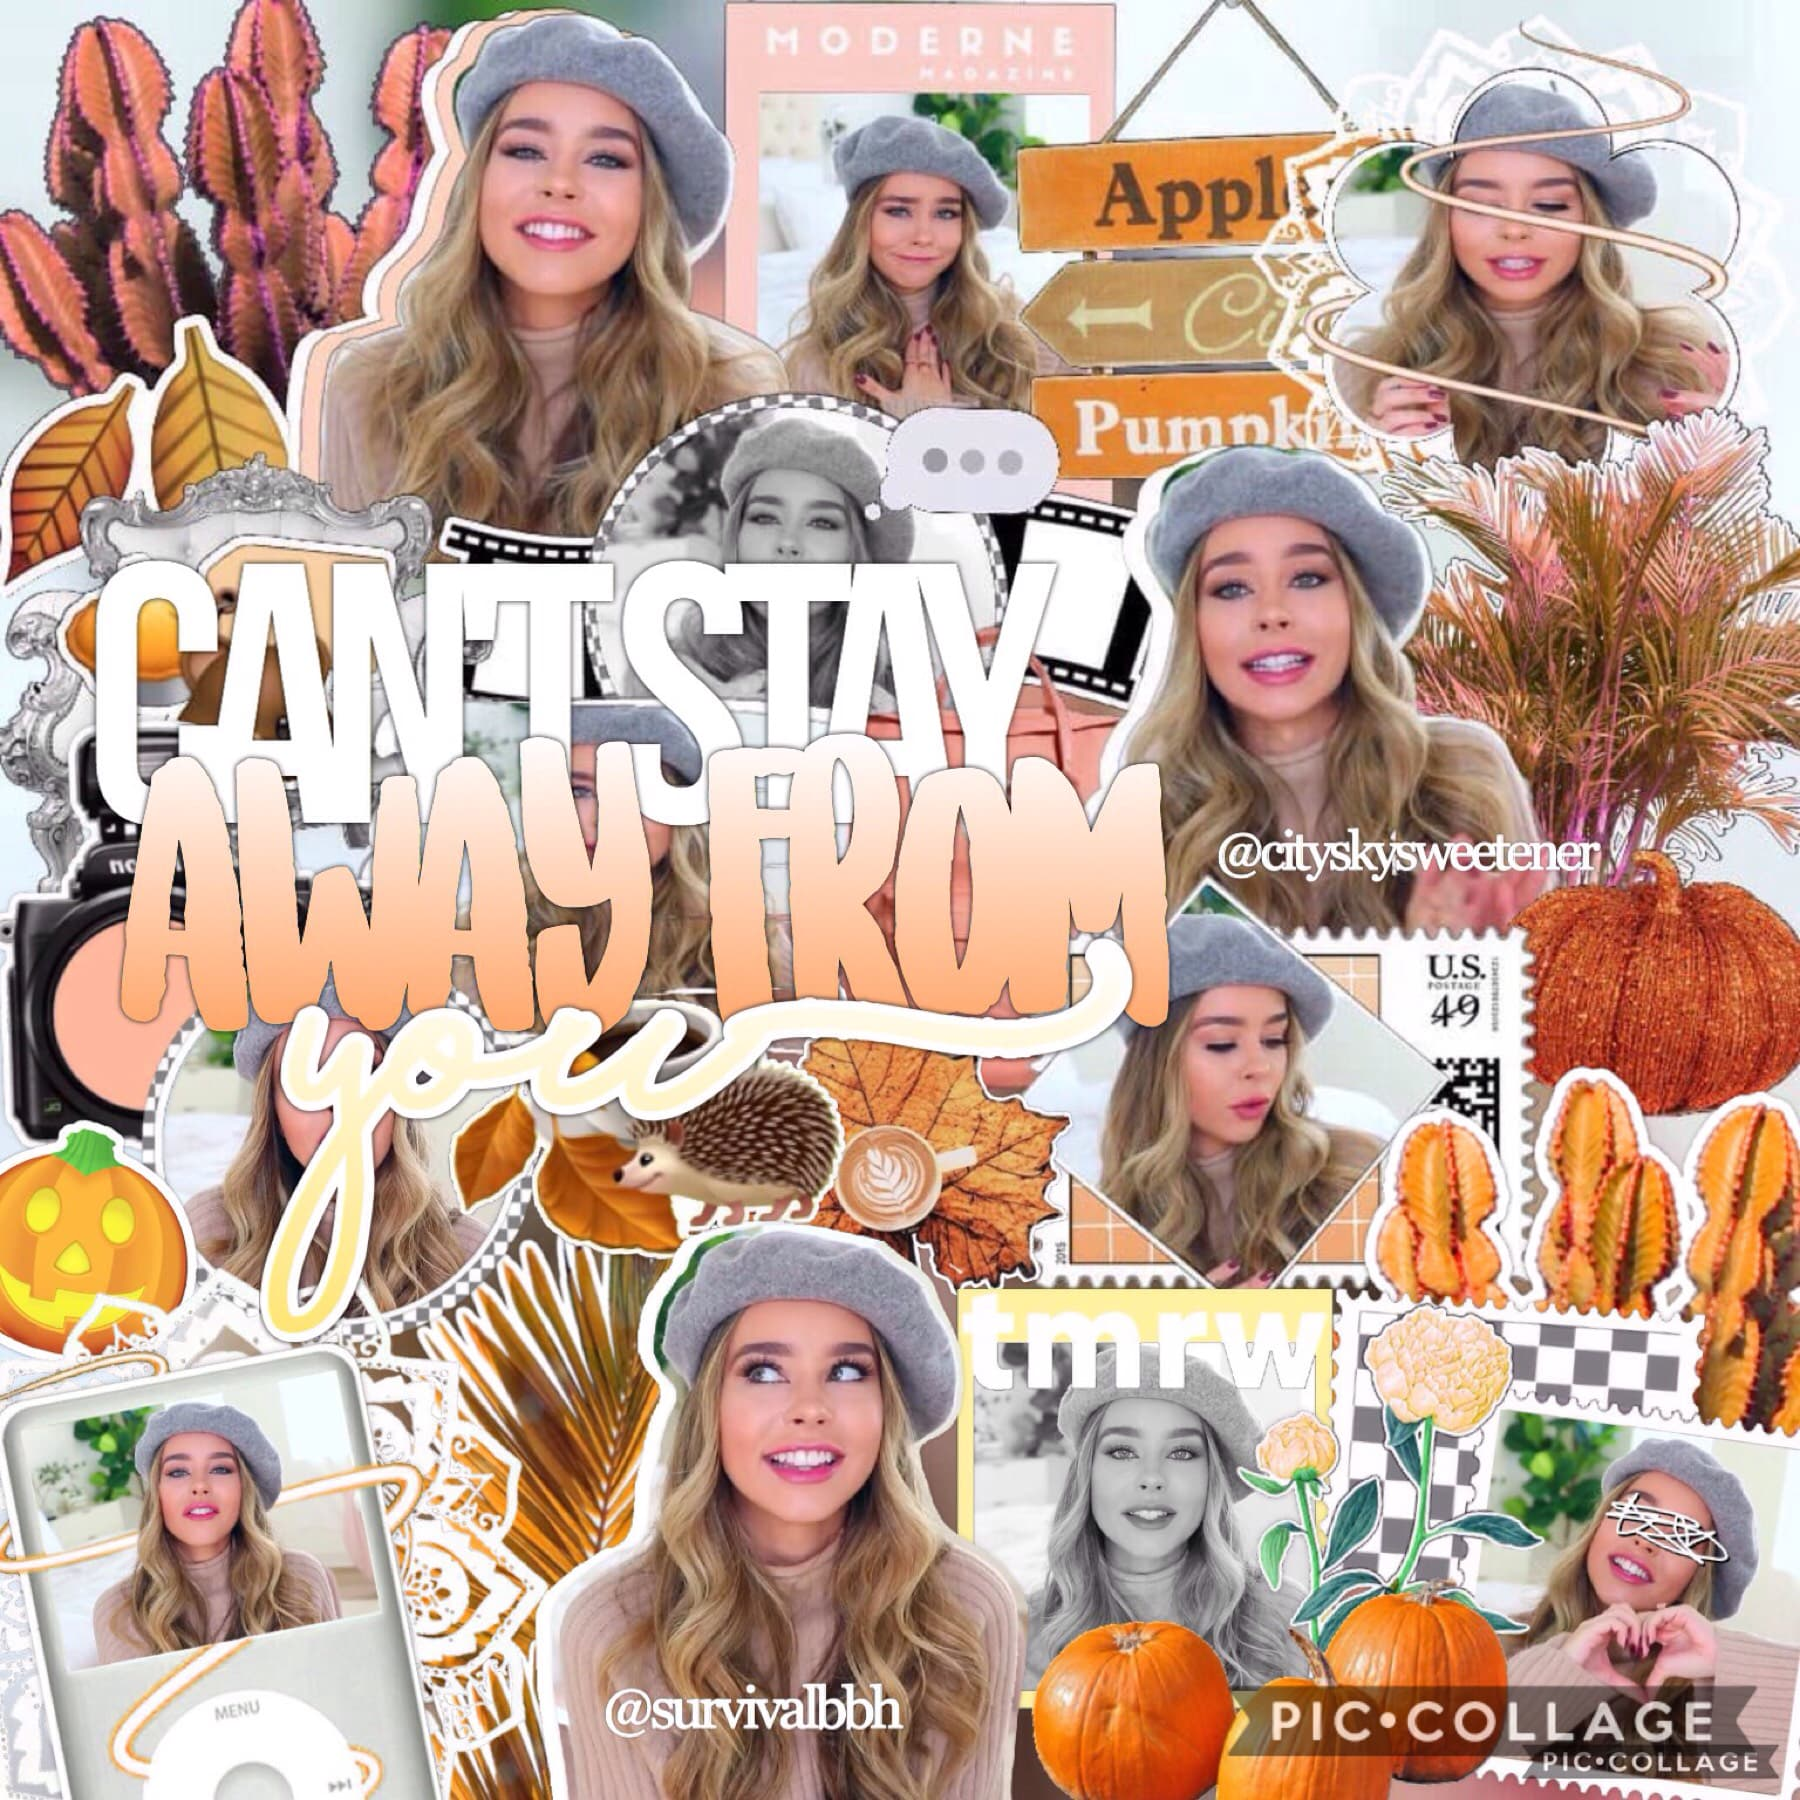 collab with the talented @cityskysweetener!!🍯 I'm loving all these fall collabs😍 comment for collab!